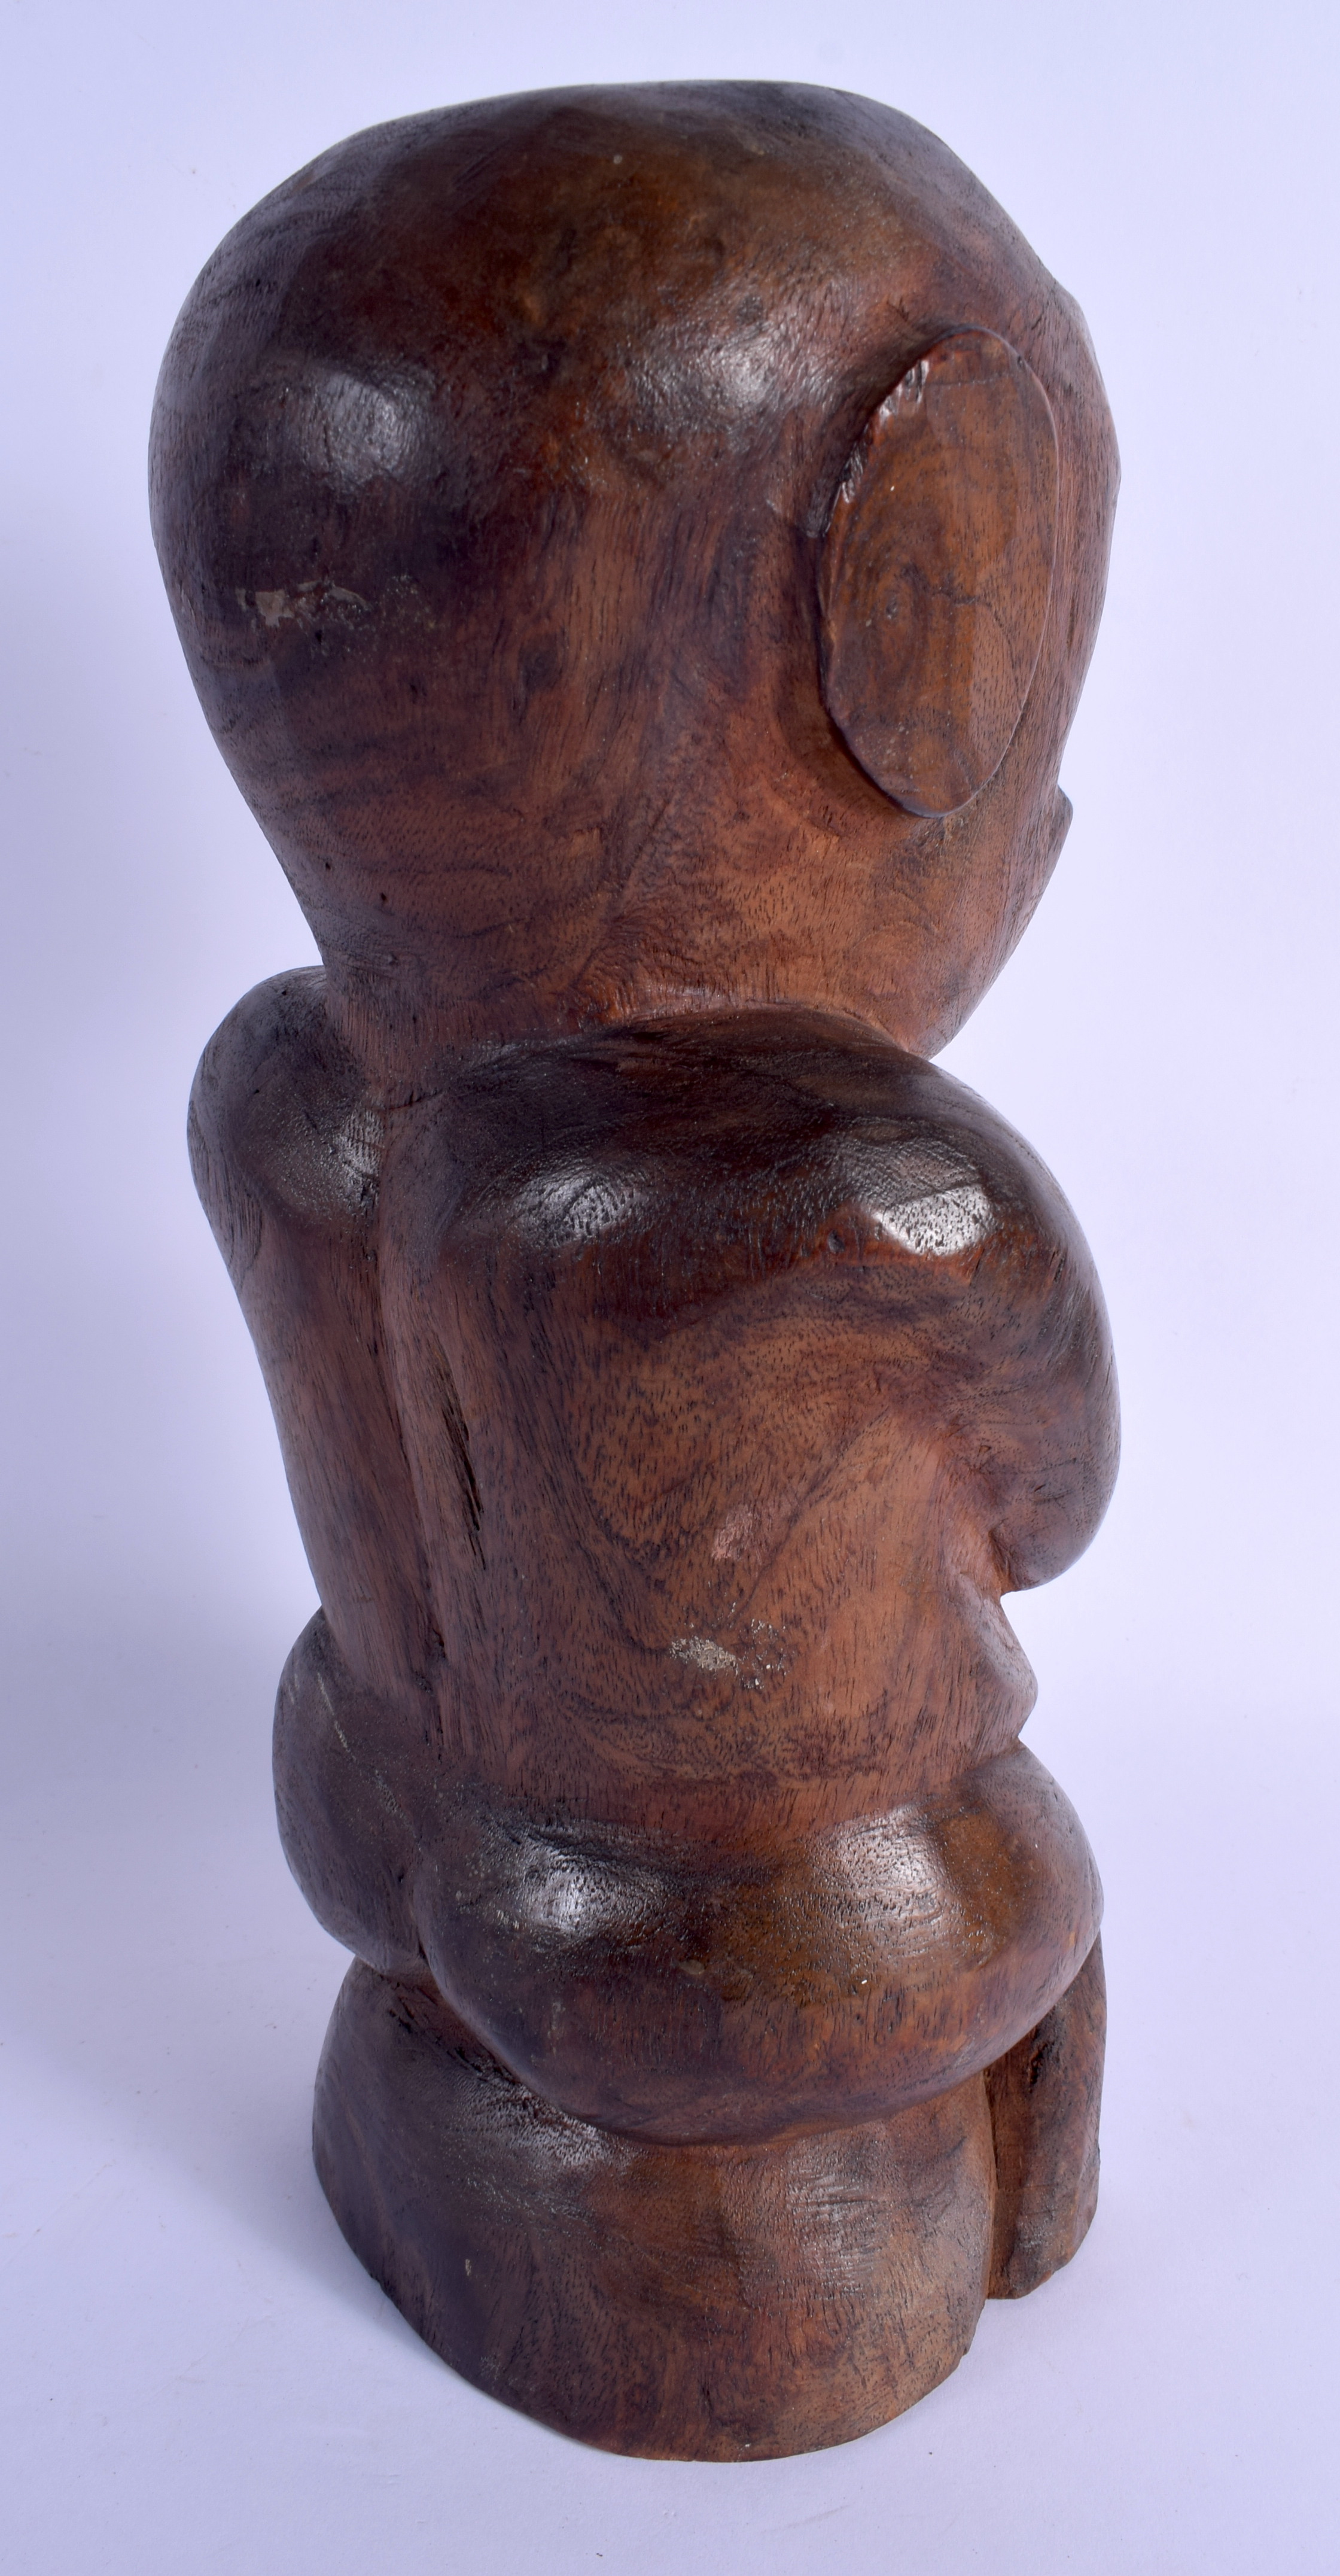 A SOUTH PACIFIC CARVED TRIBAL SEATED FIGURE possibly from Tahiti or Marquesas Islands. 33 cm high. - Image 3 of 4